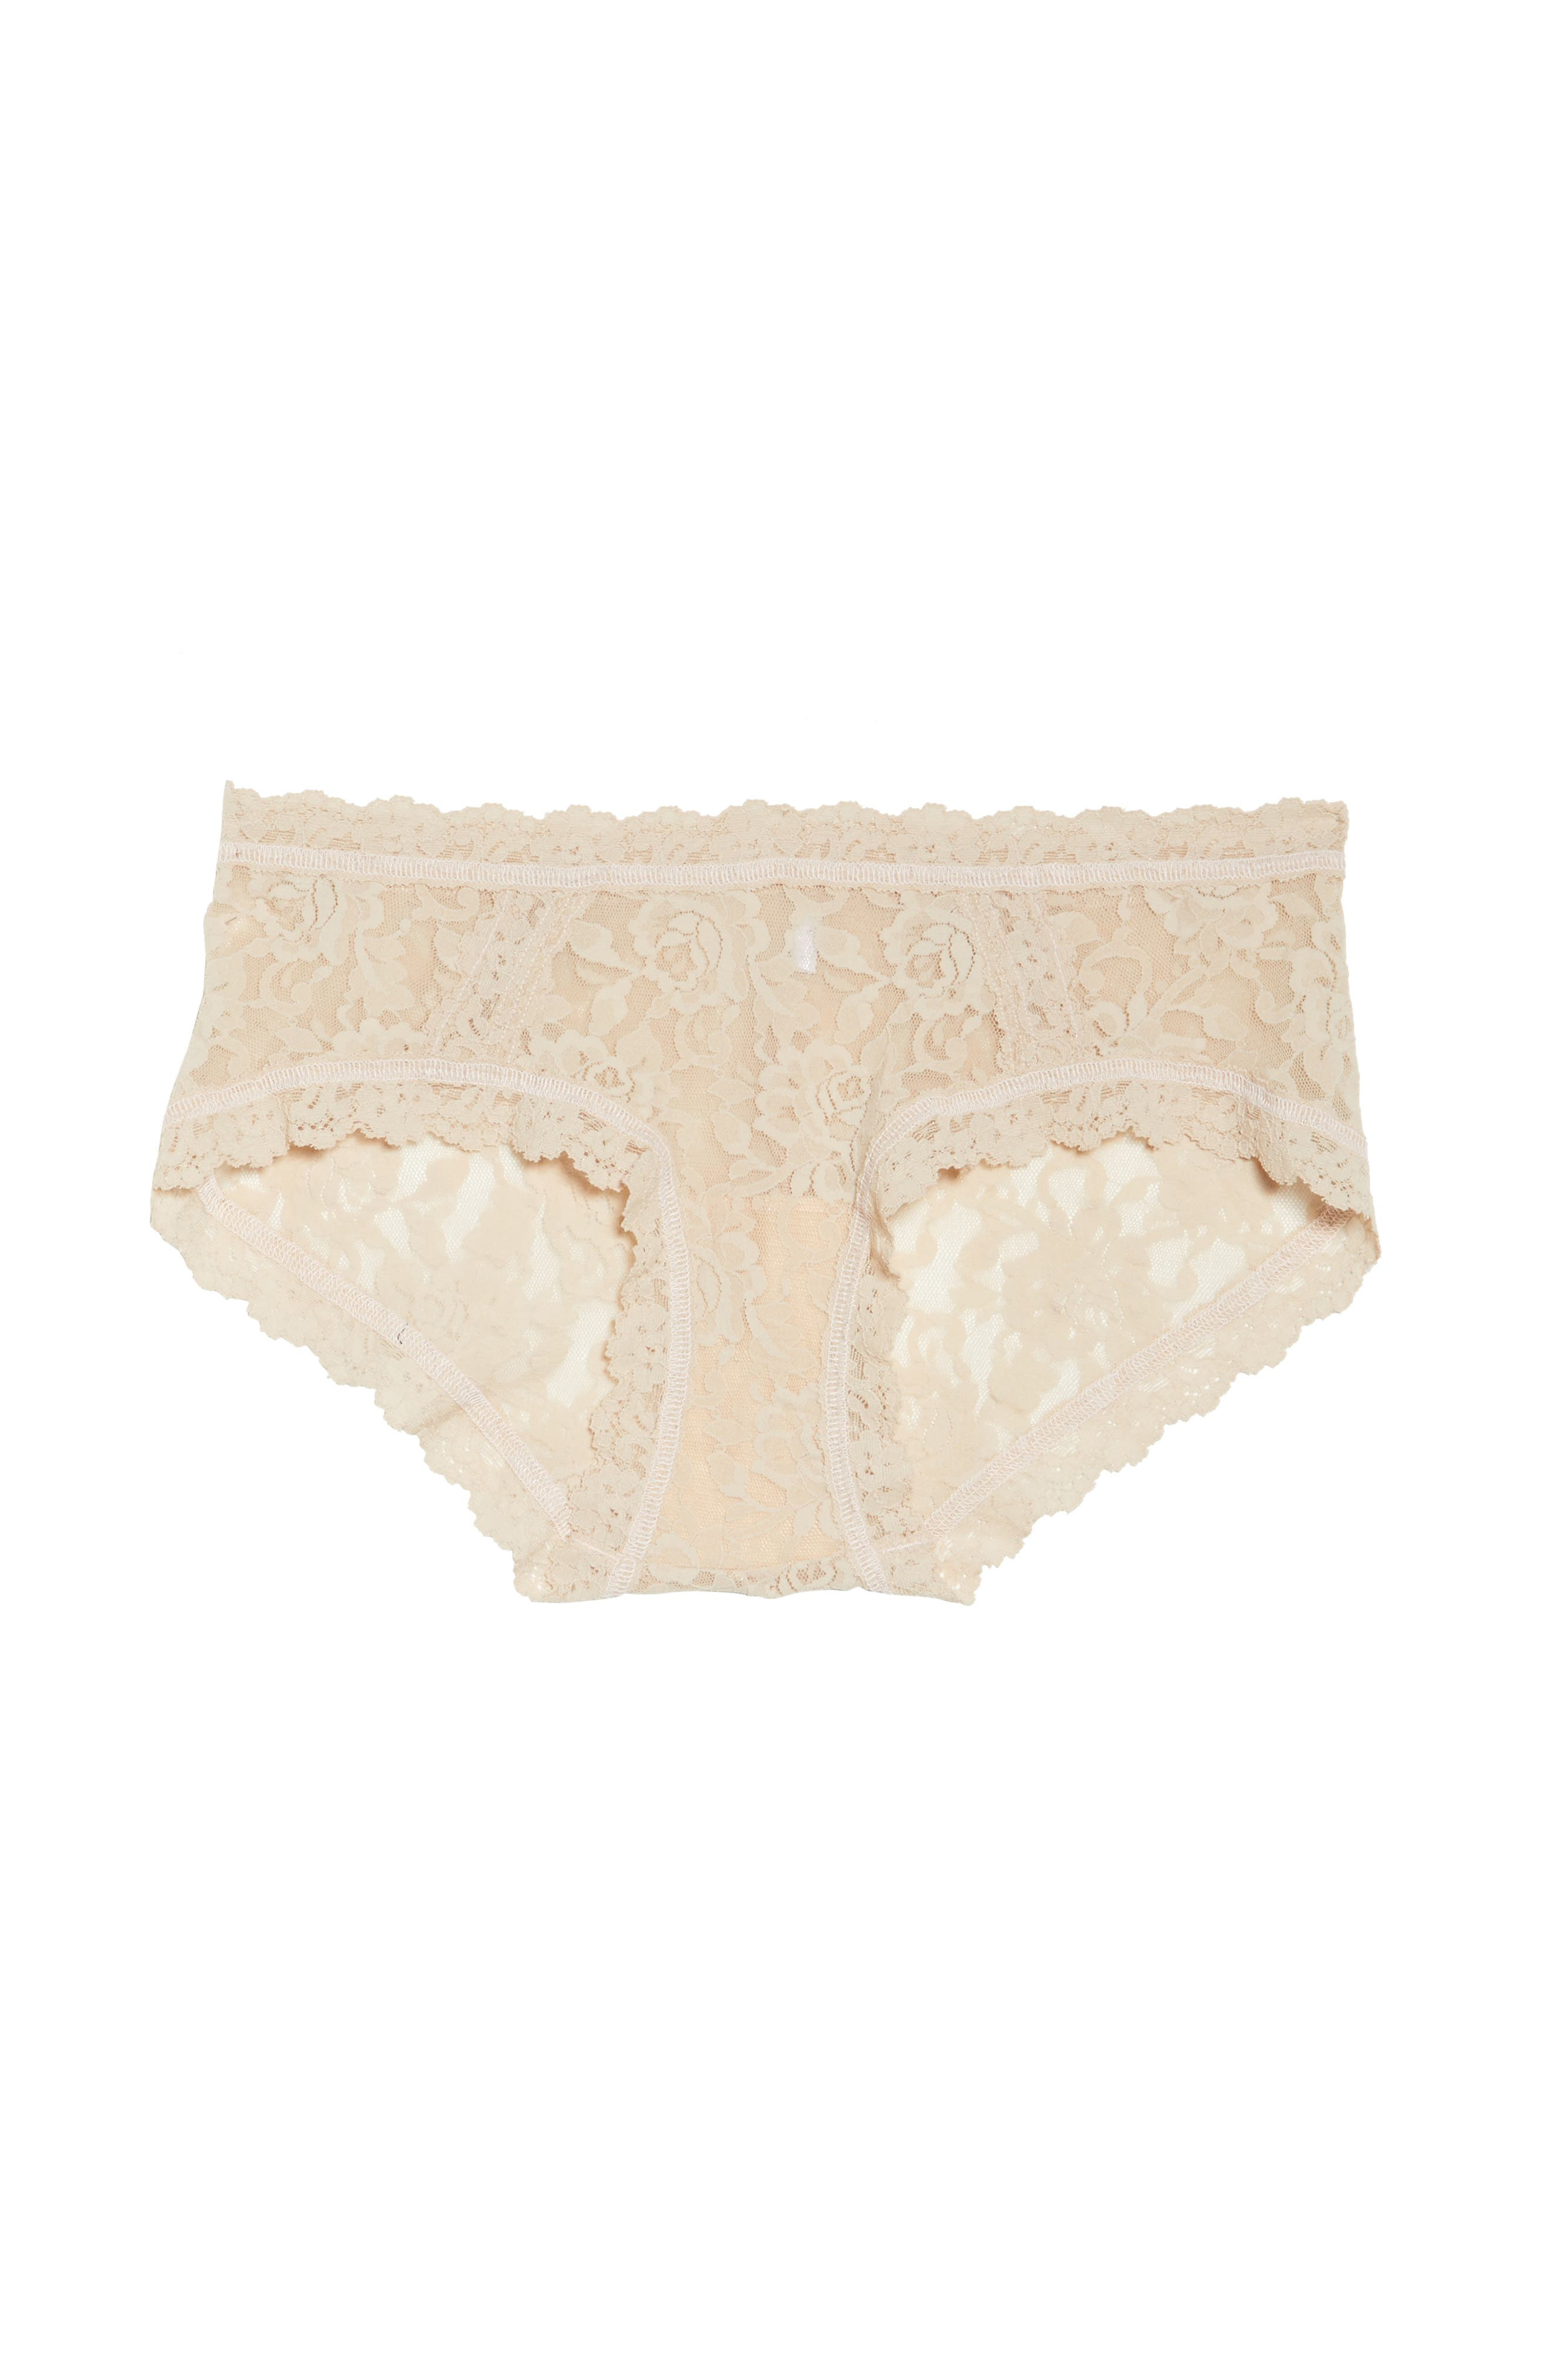 Floral Stretch Lace Girlkini,                             Alternate thumbnail 14, color,